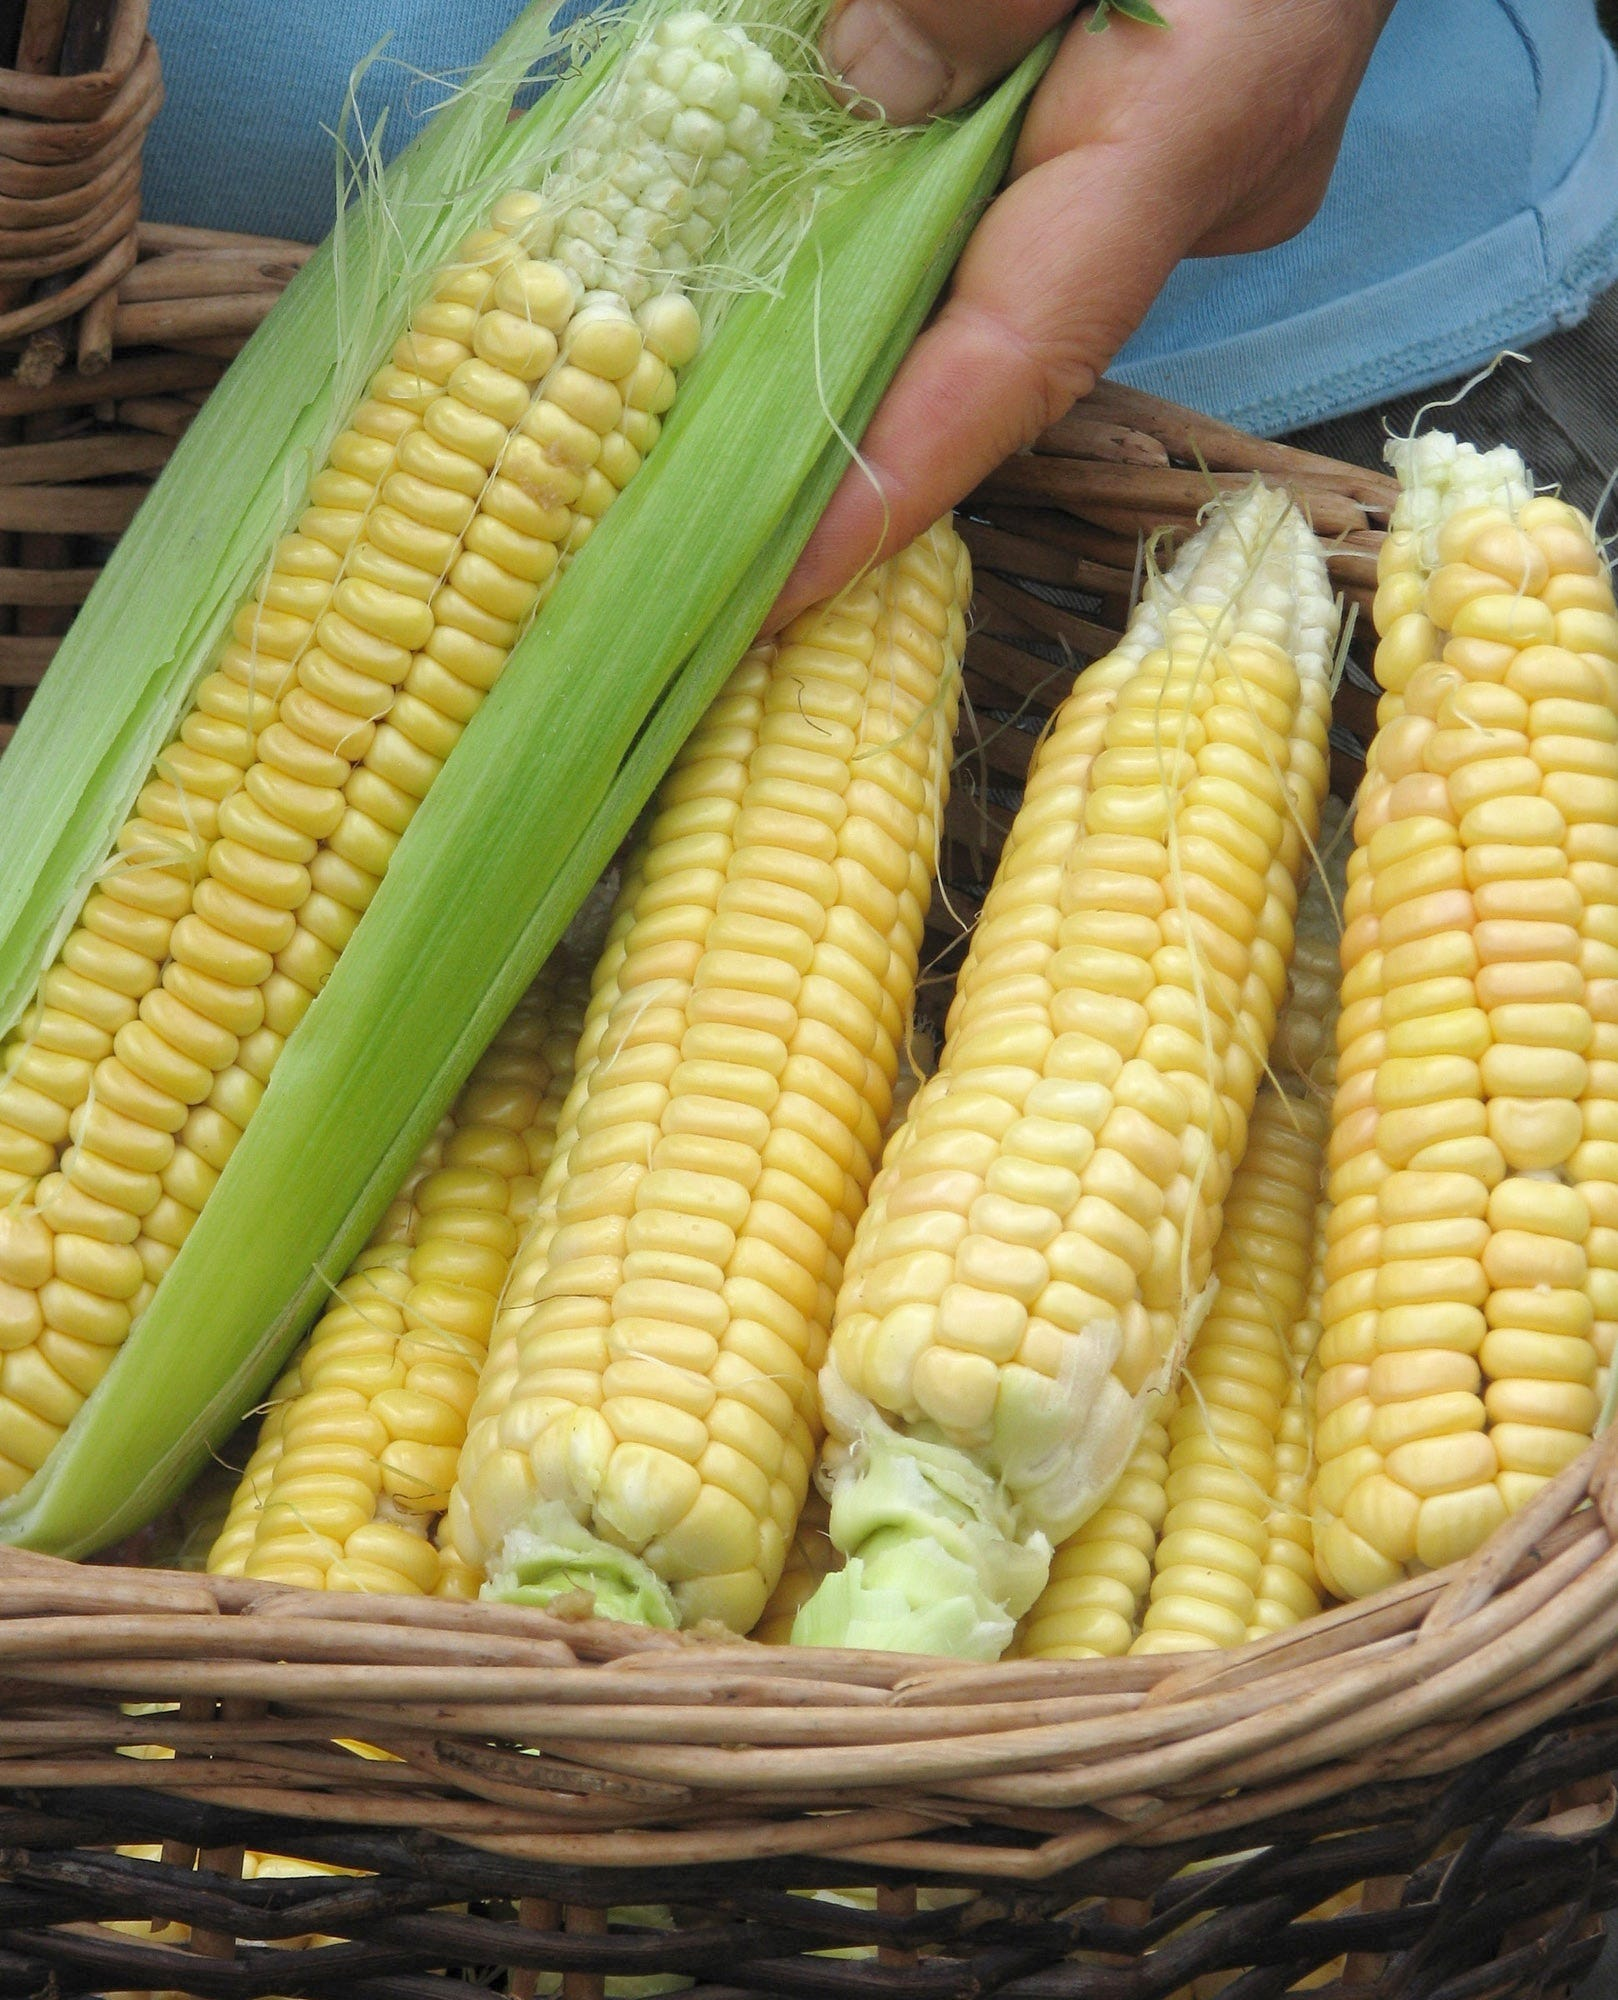 How to grow sweet corn that tastes great in your own garden